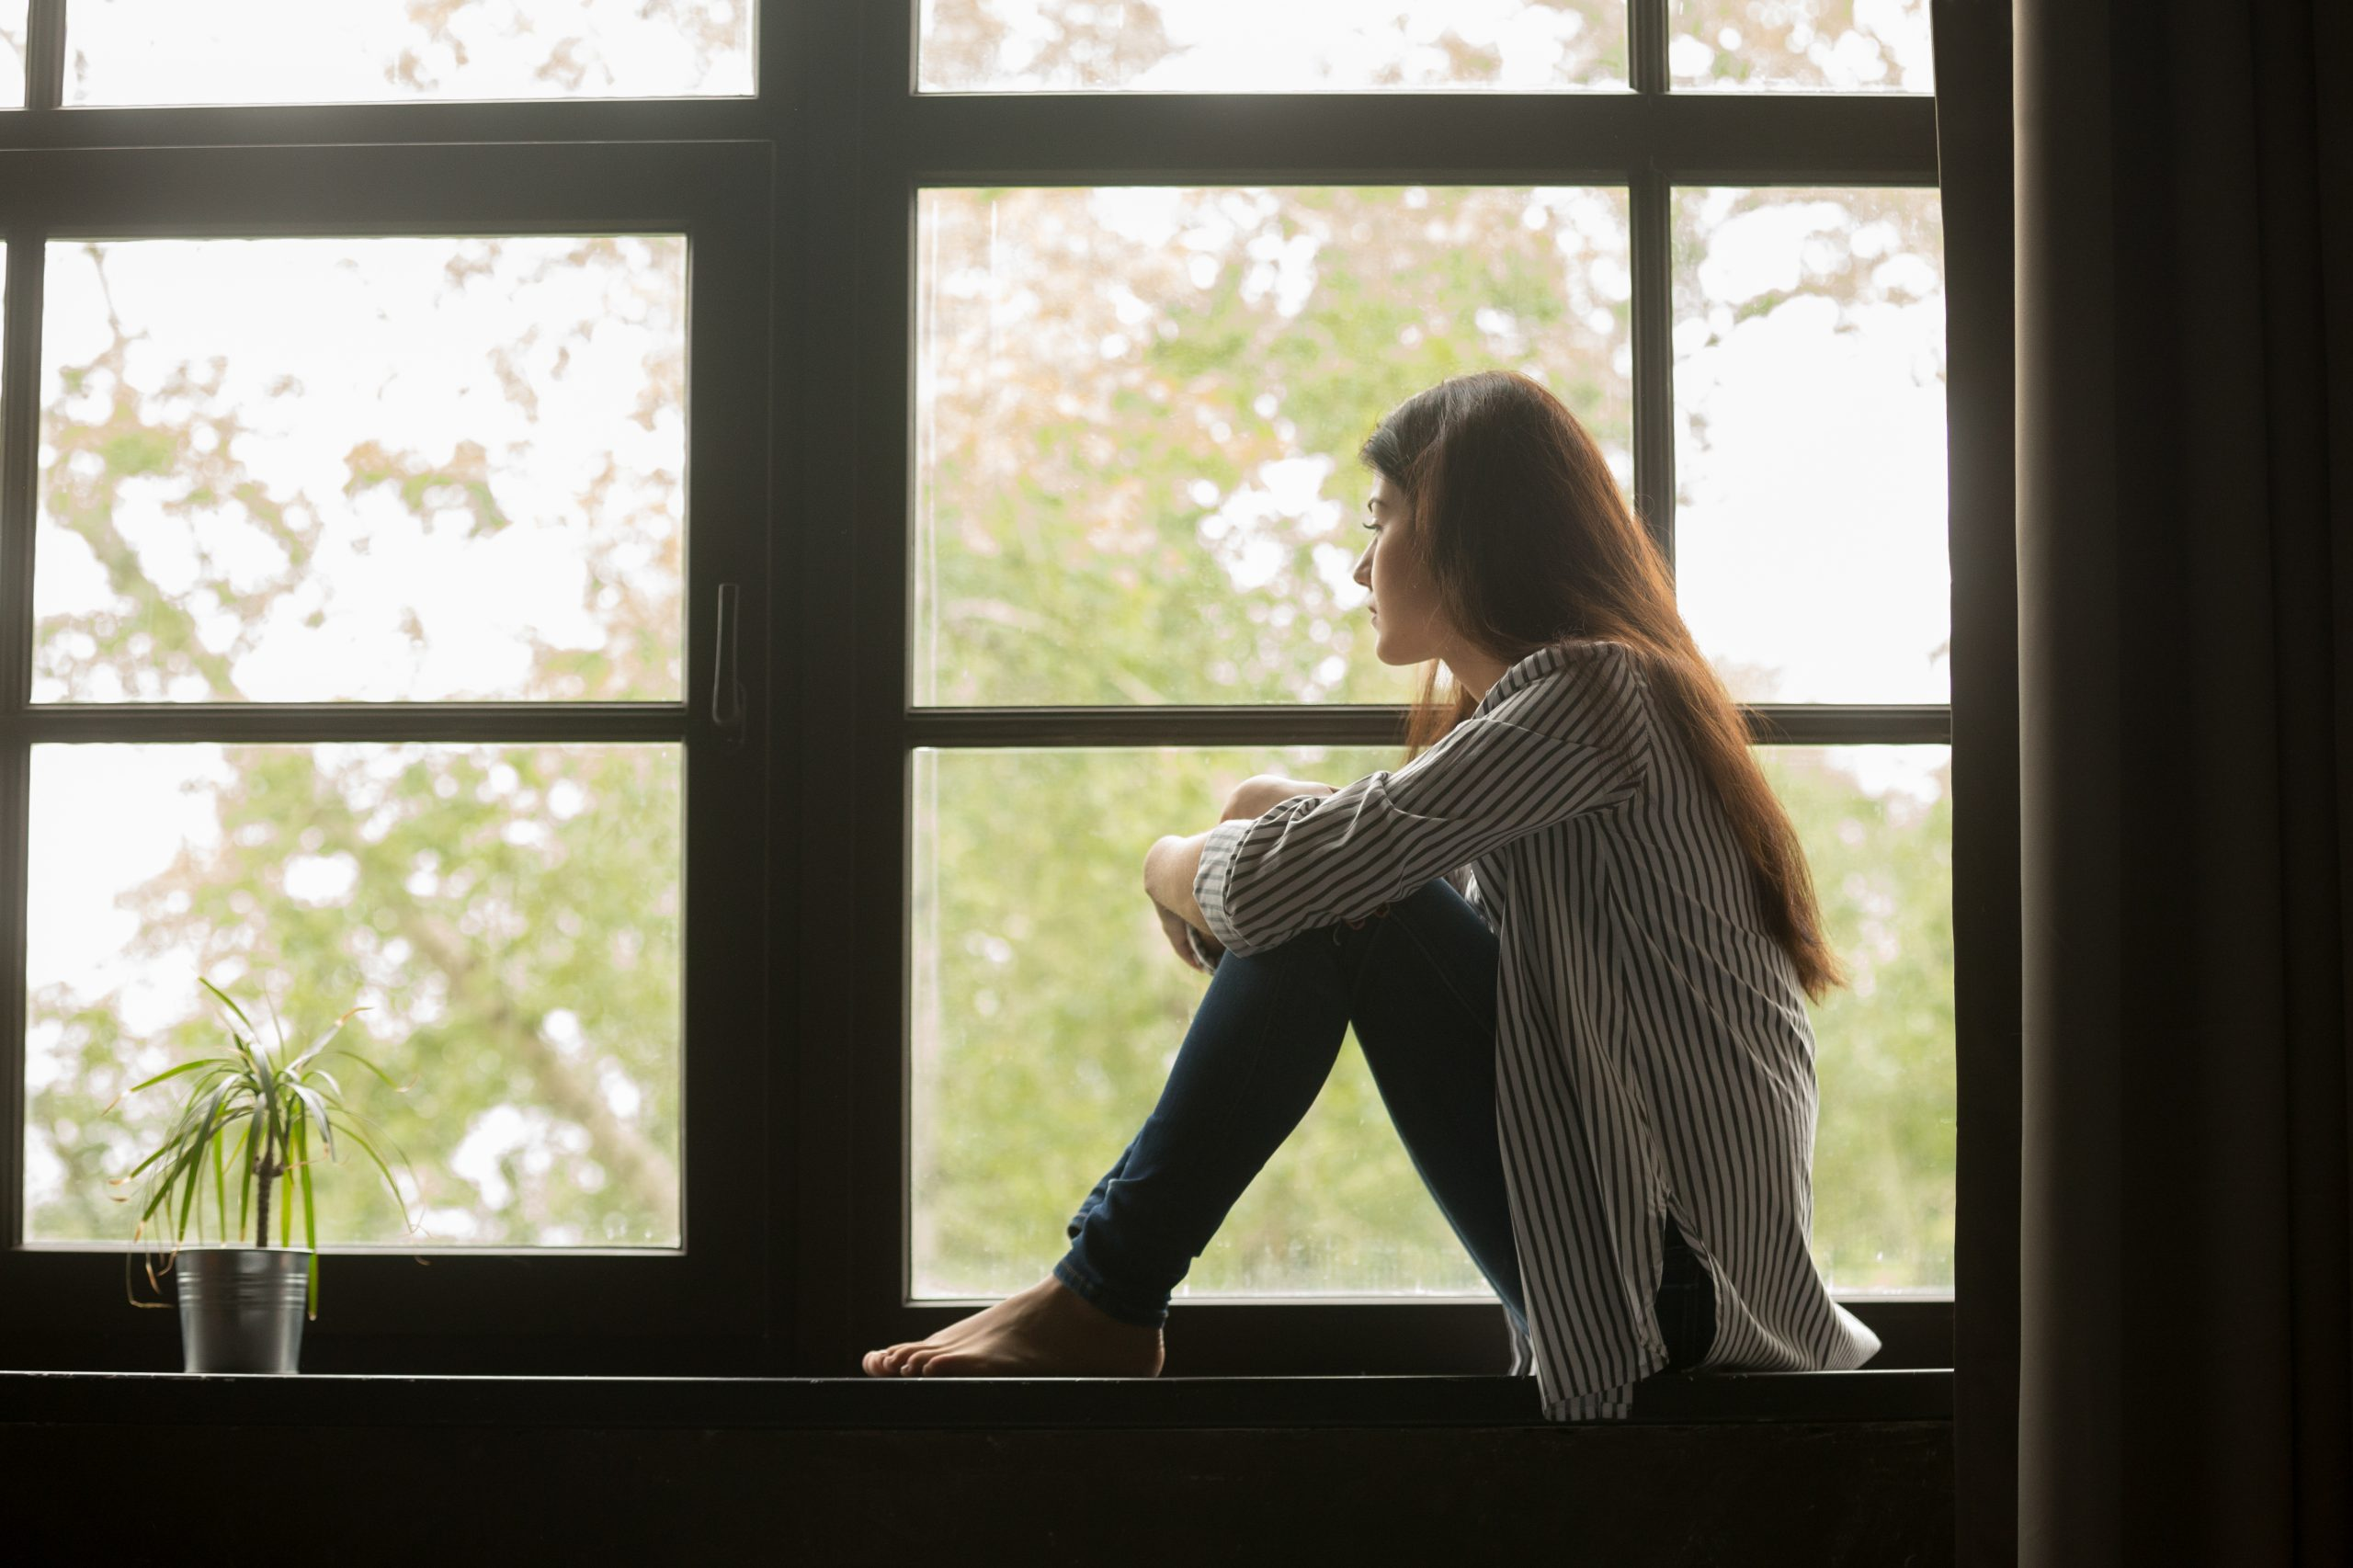 Girl sitting on sill looking out window.